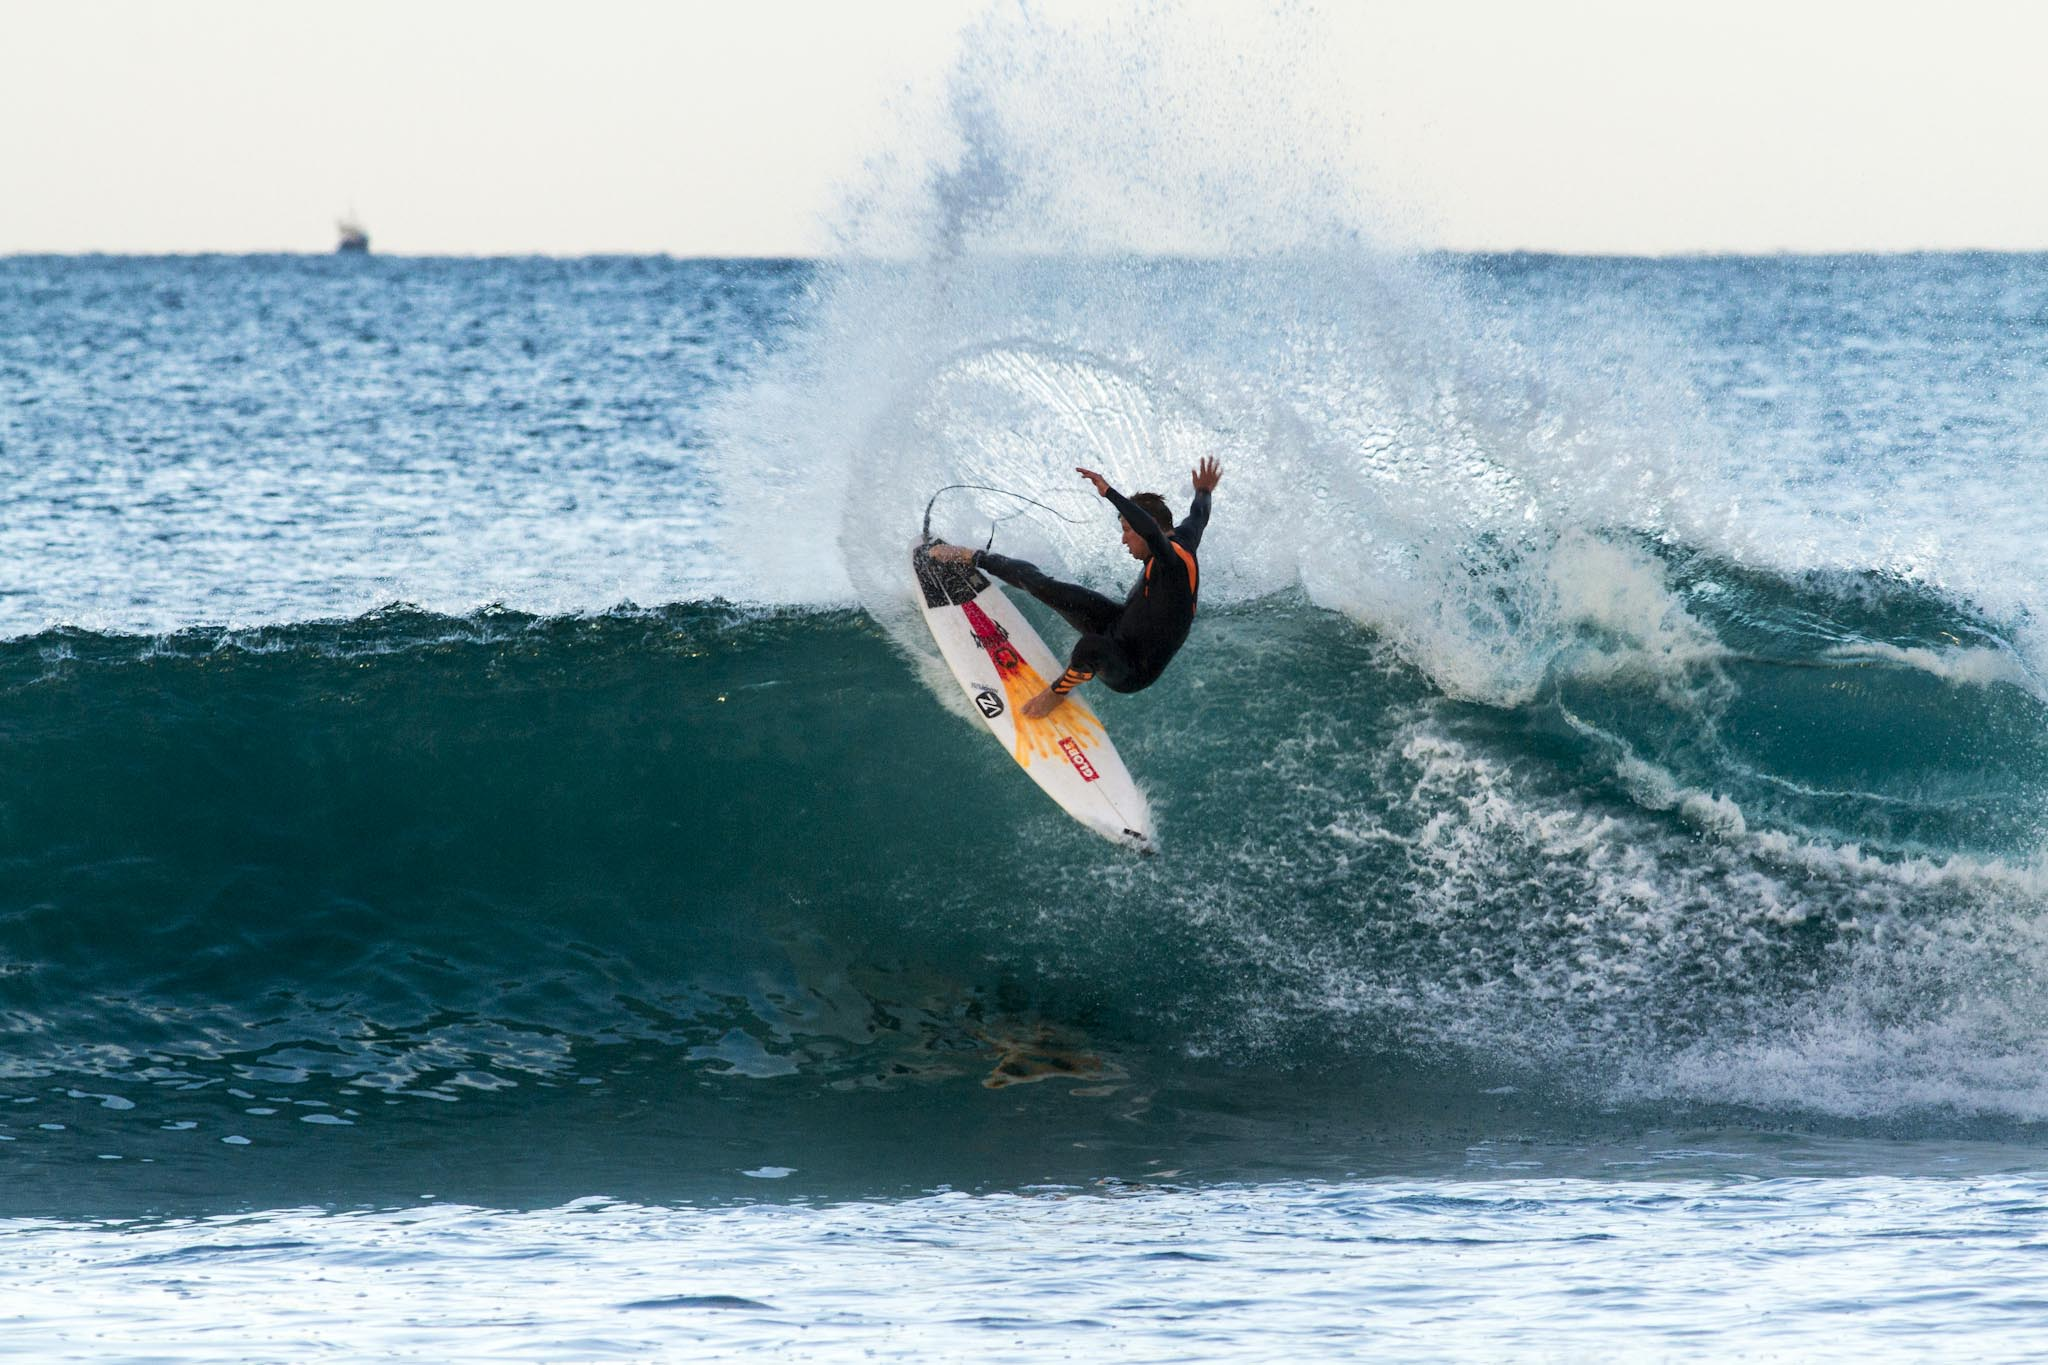 Highlights from Day 4 of the J Bay Open of Surfing